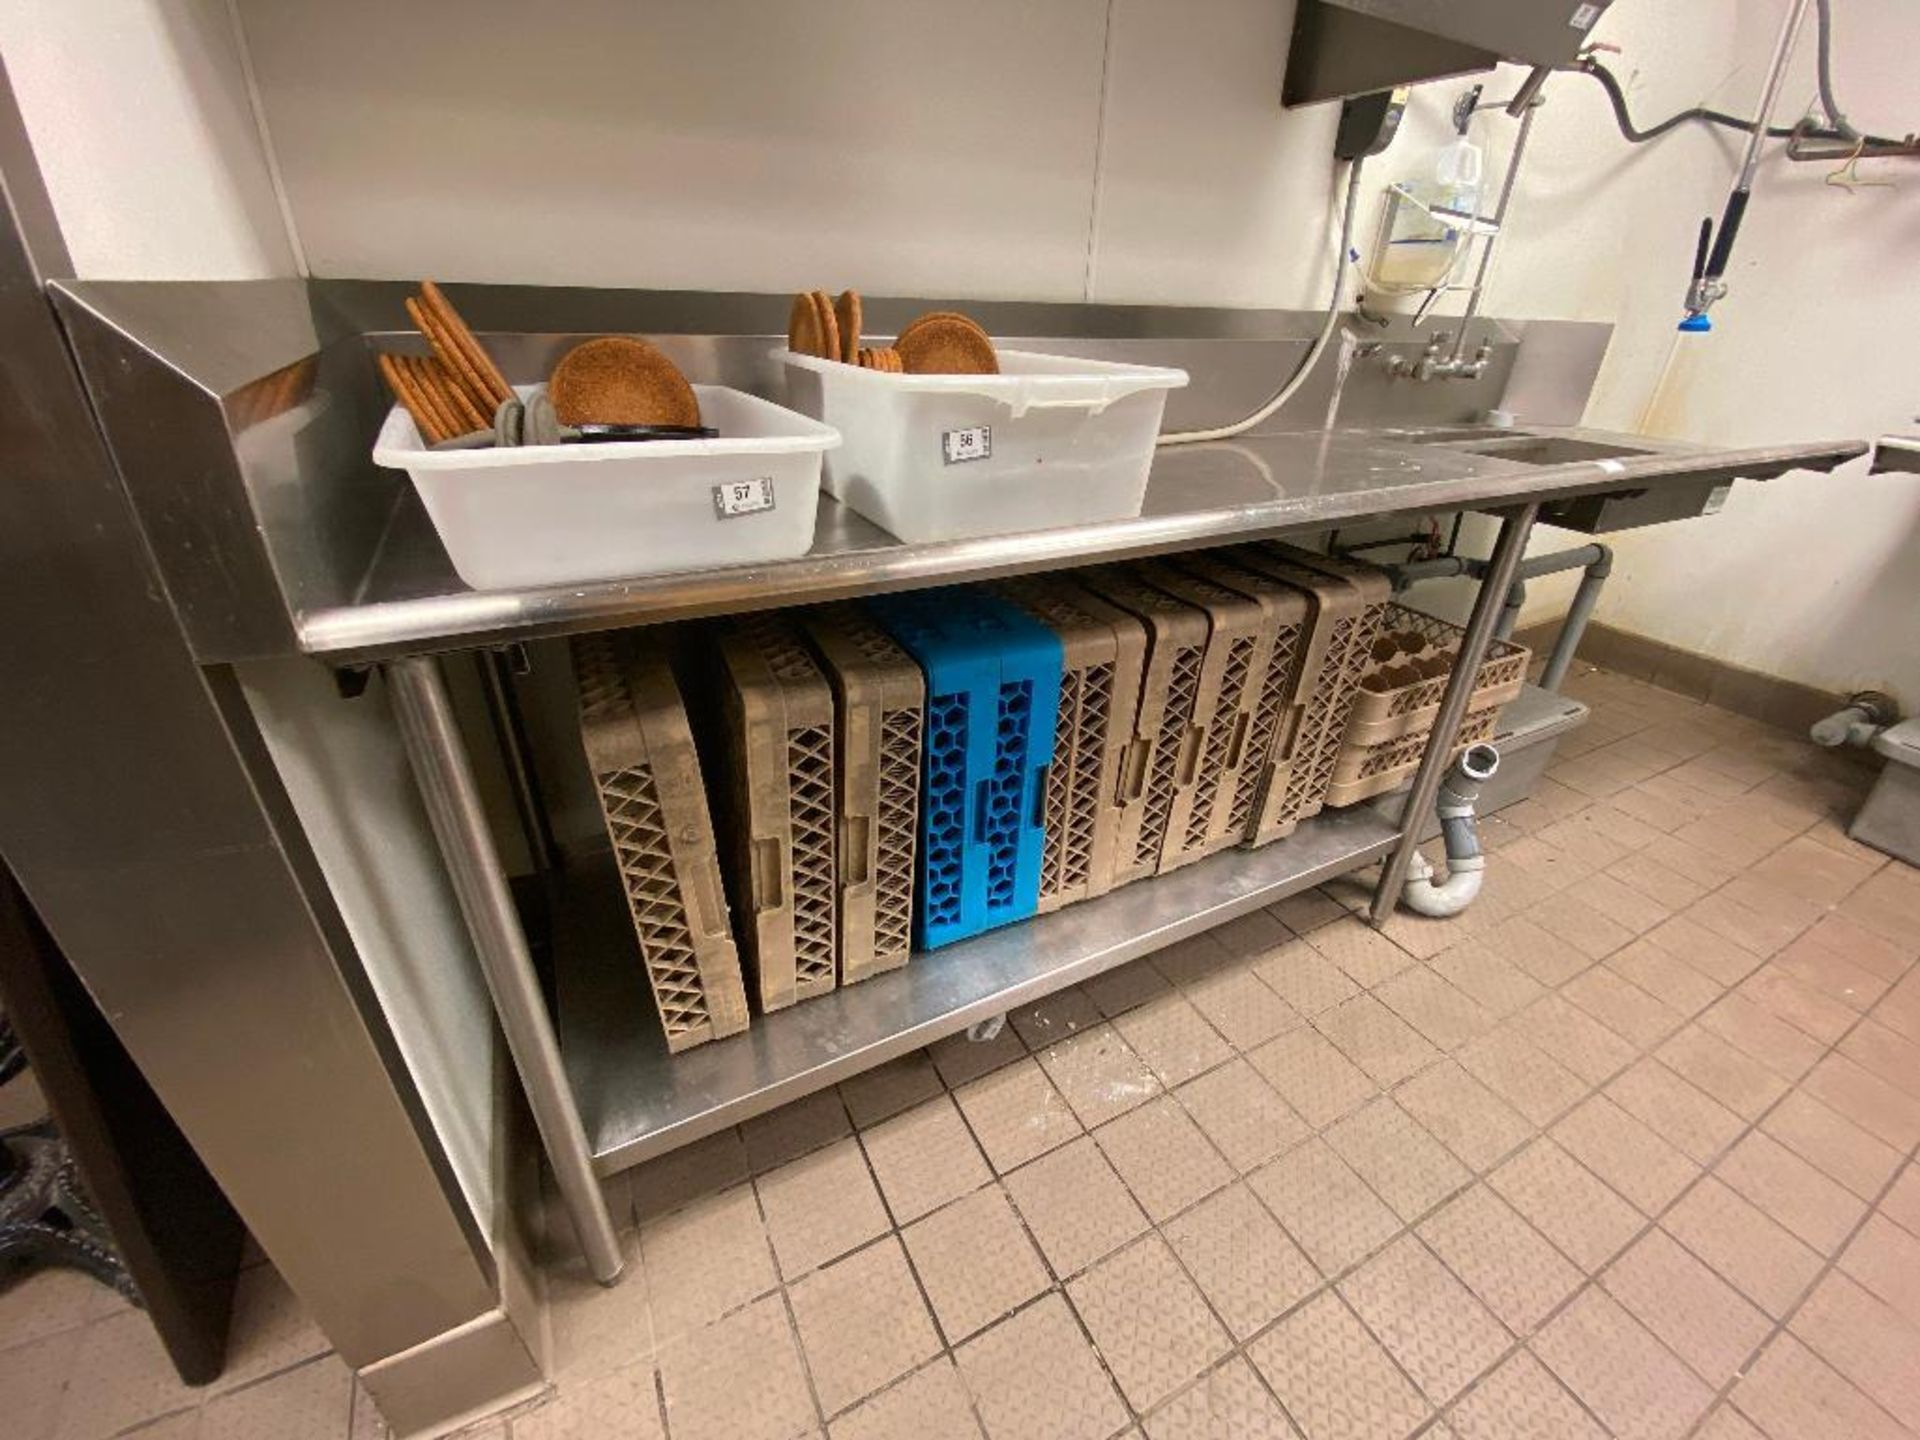 """105"""" STAINLESS STEEL DRAINBOARD/ SINK WITH PRE-RINSE & GREASE TRAP - NOTE: REQUIRES DISCONNECT, PLEA - Image 3 of 4"""